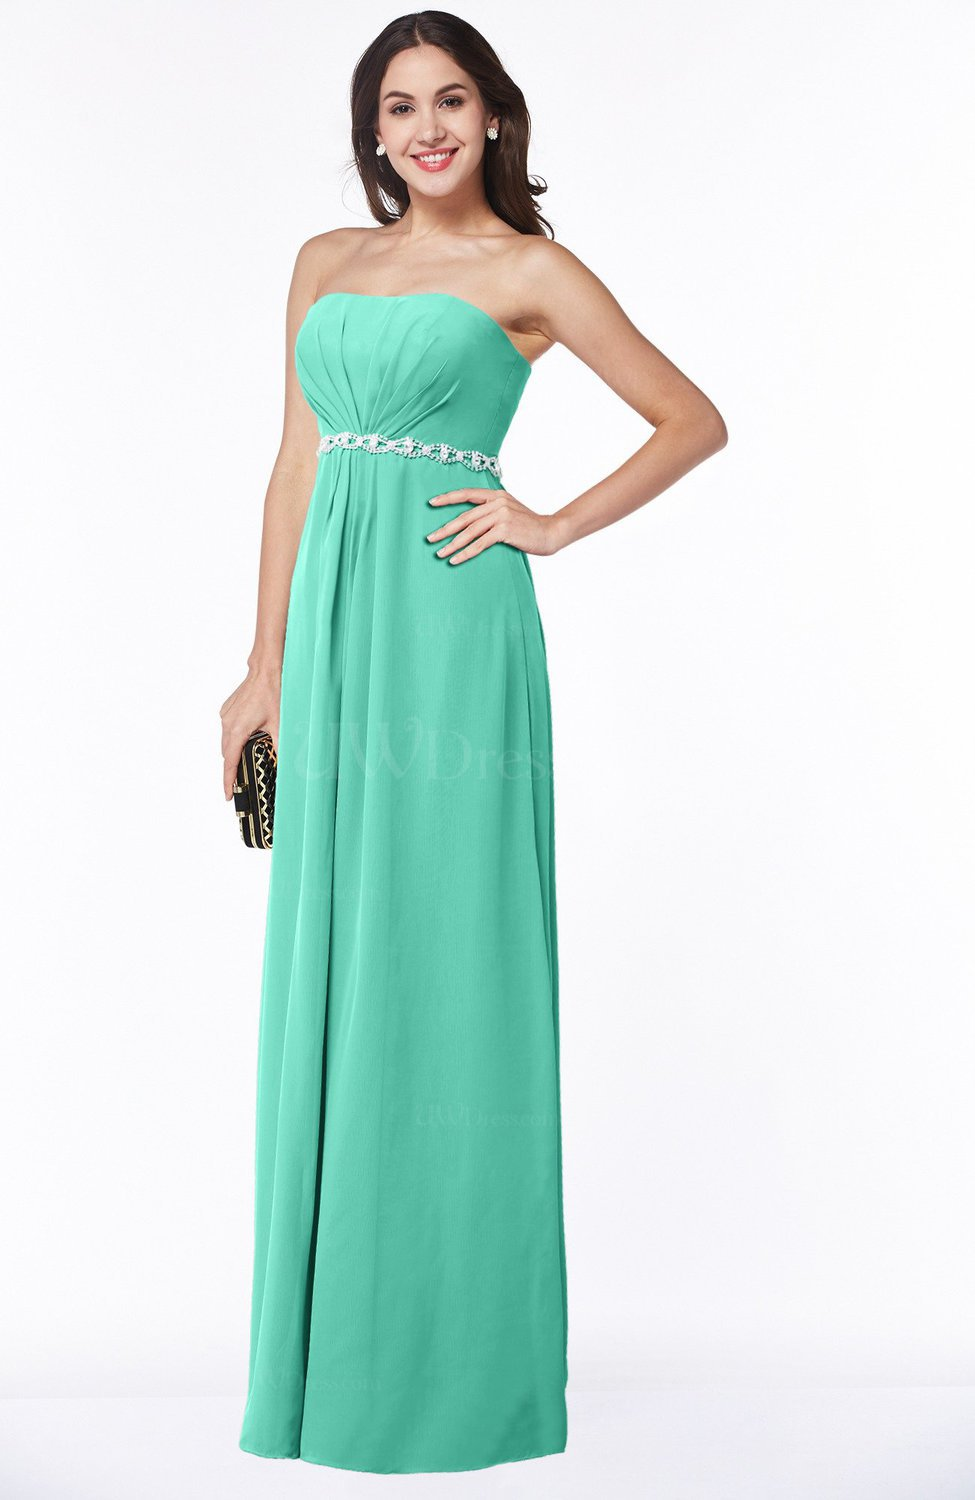 ae69770081 Seafoam Green Sexy A-line Sleeveless Zipper Chiffon Floor Length Plus Size  Bridesmaid Dresses (Style D74676)